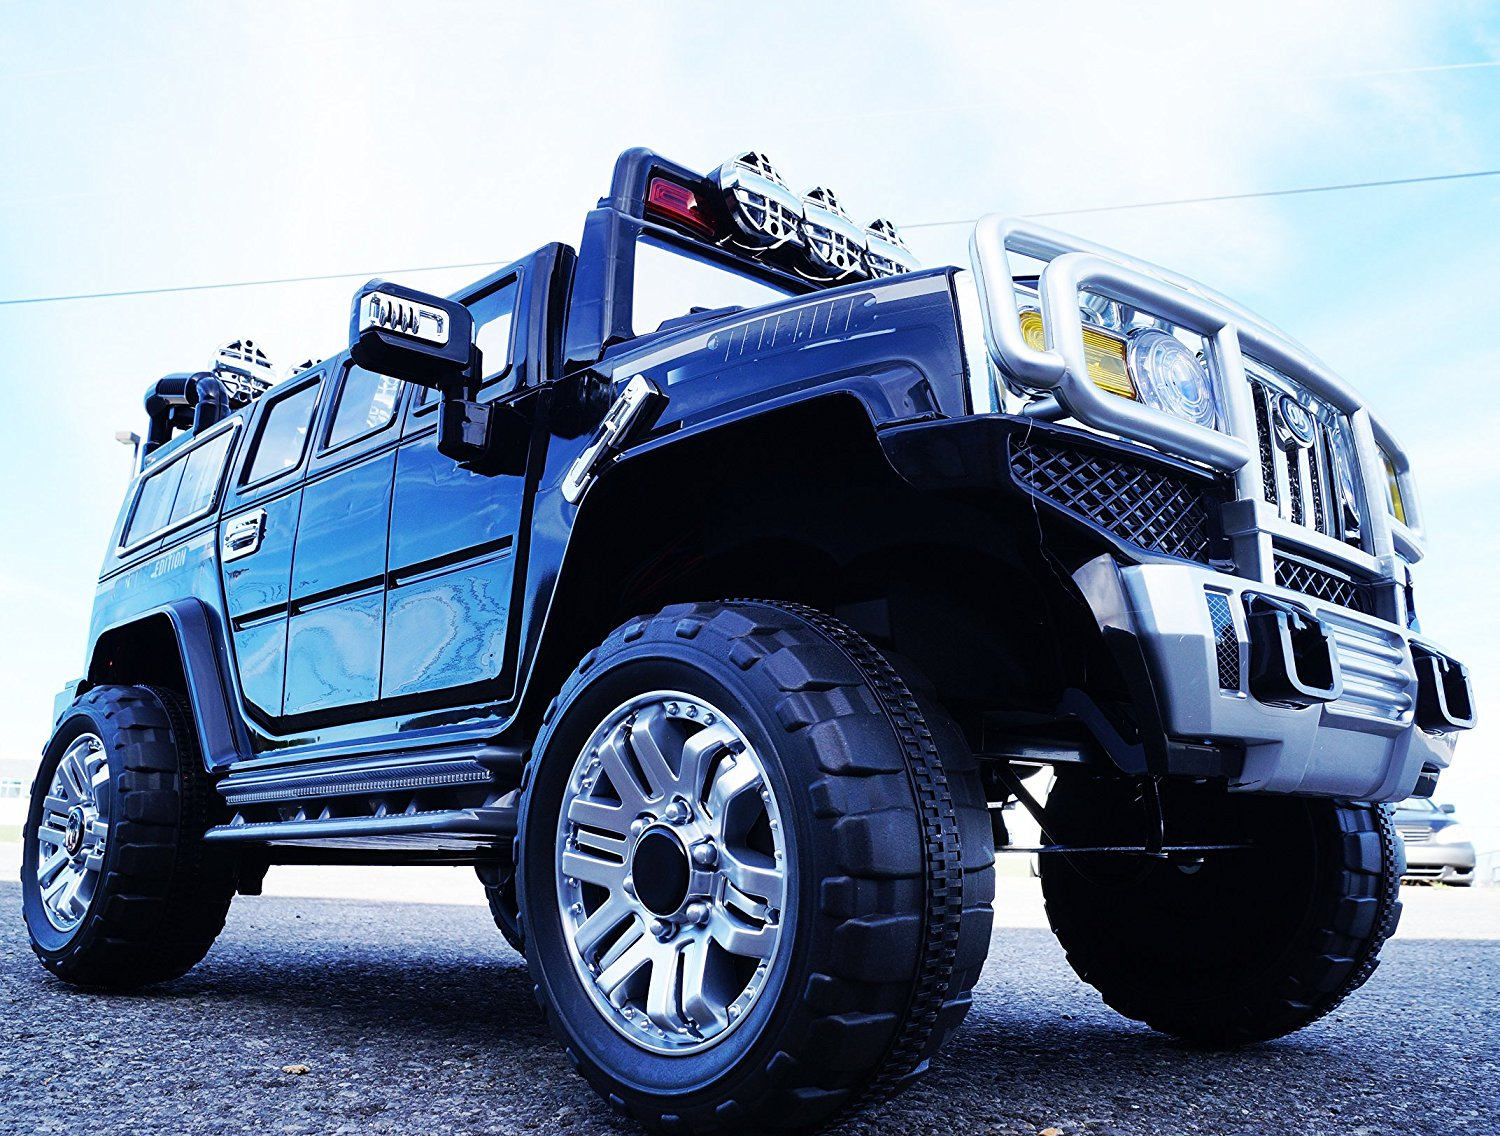 RIDE-on-CAR Hummer style. With-remote-control. For kids. Electric car to drive. Toys battery powered 12 volt. Ride on toys. Pedal car for children. Electric machine off road.